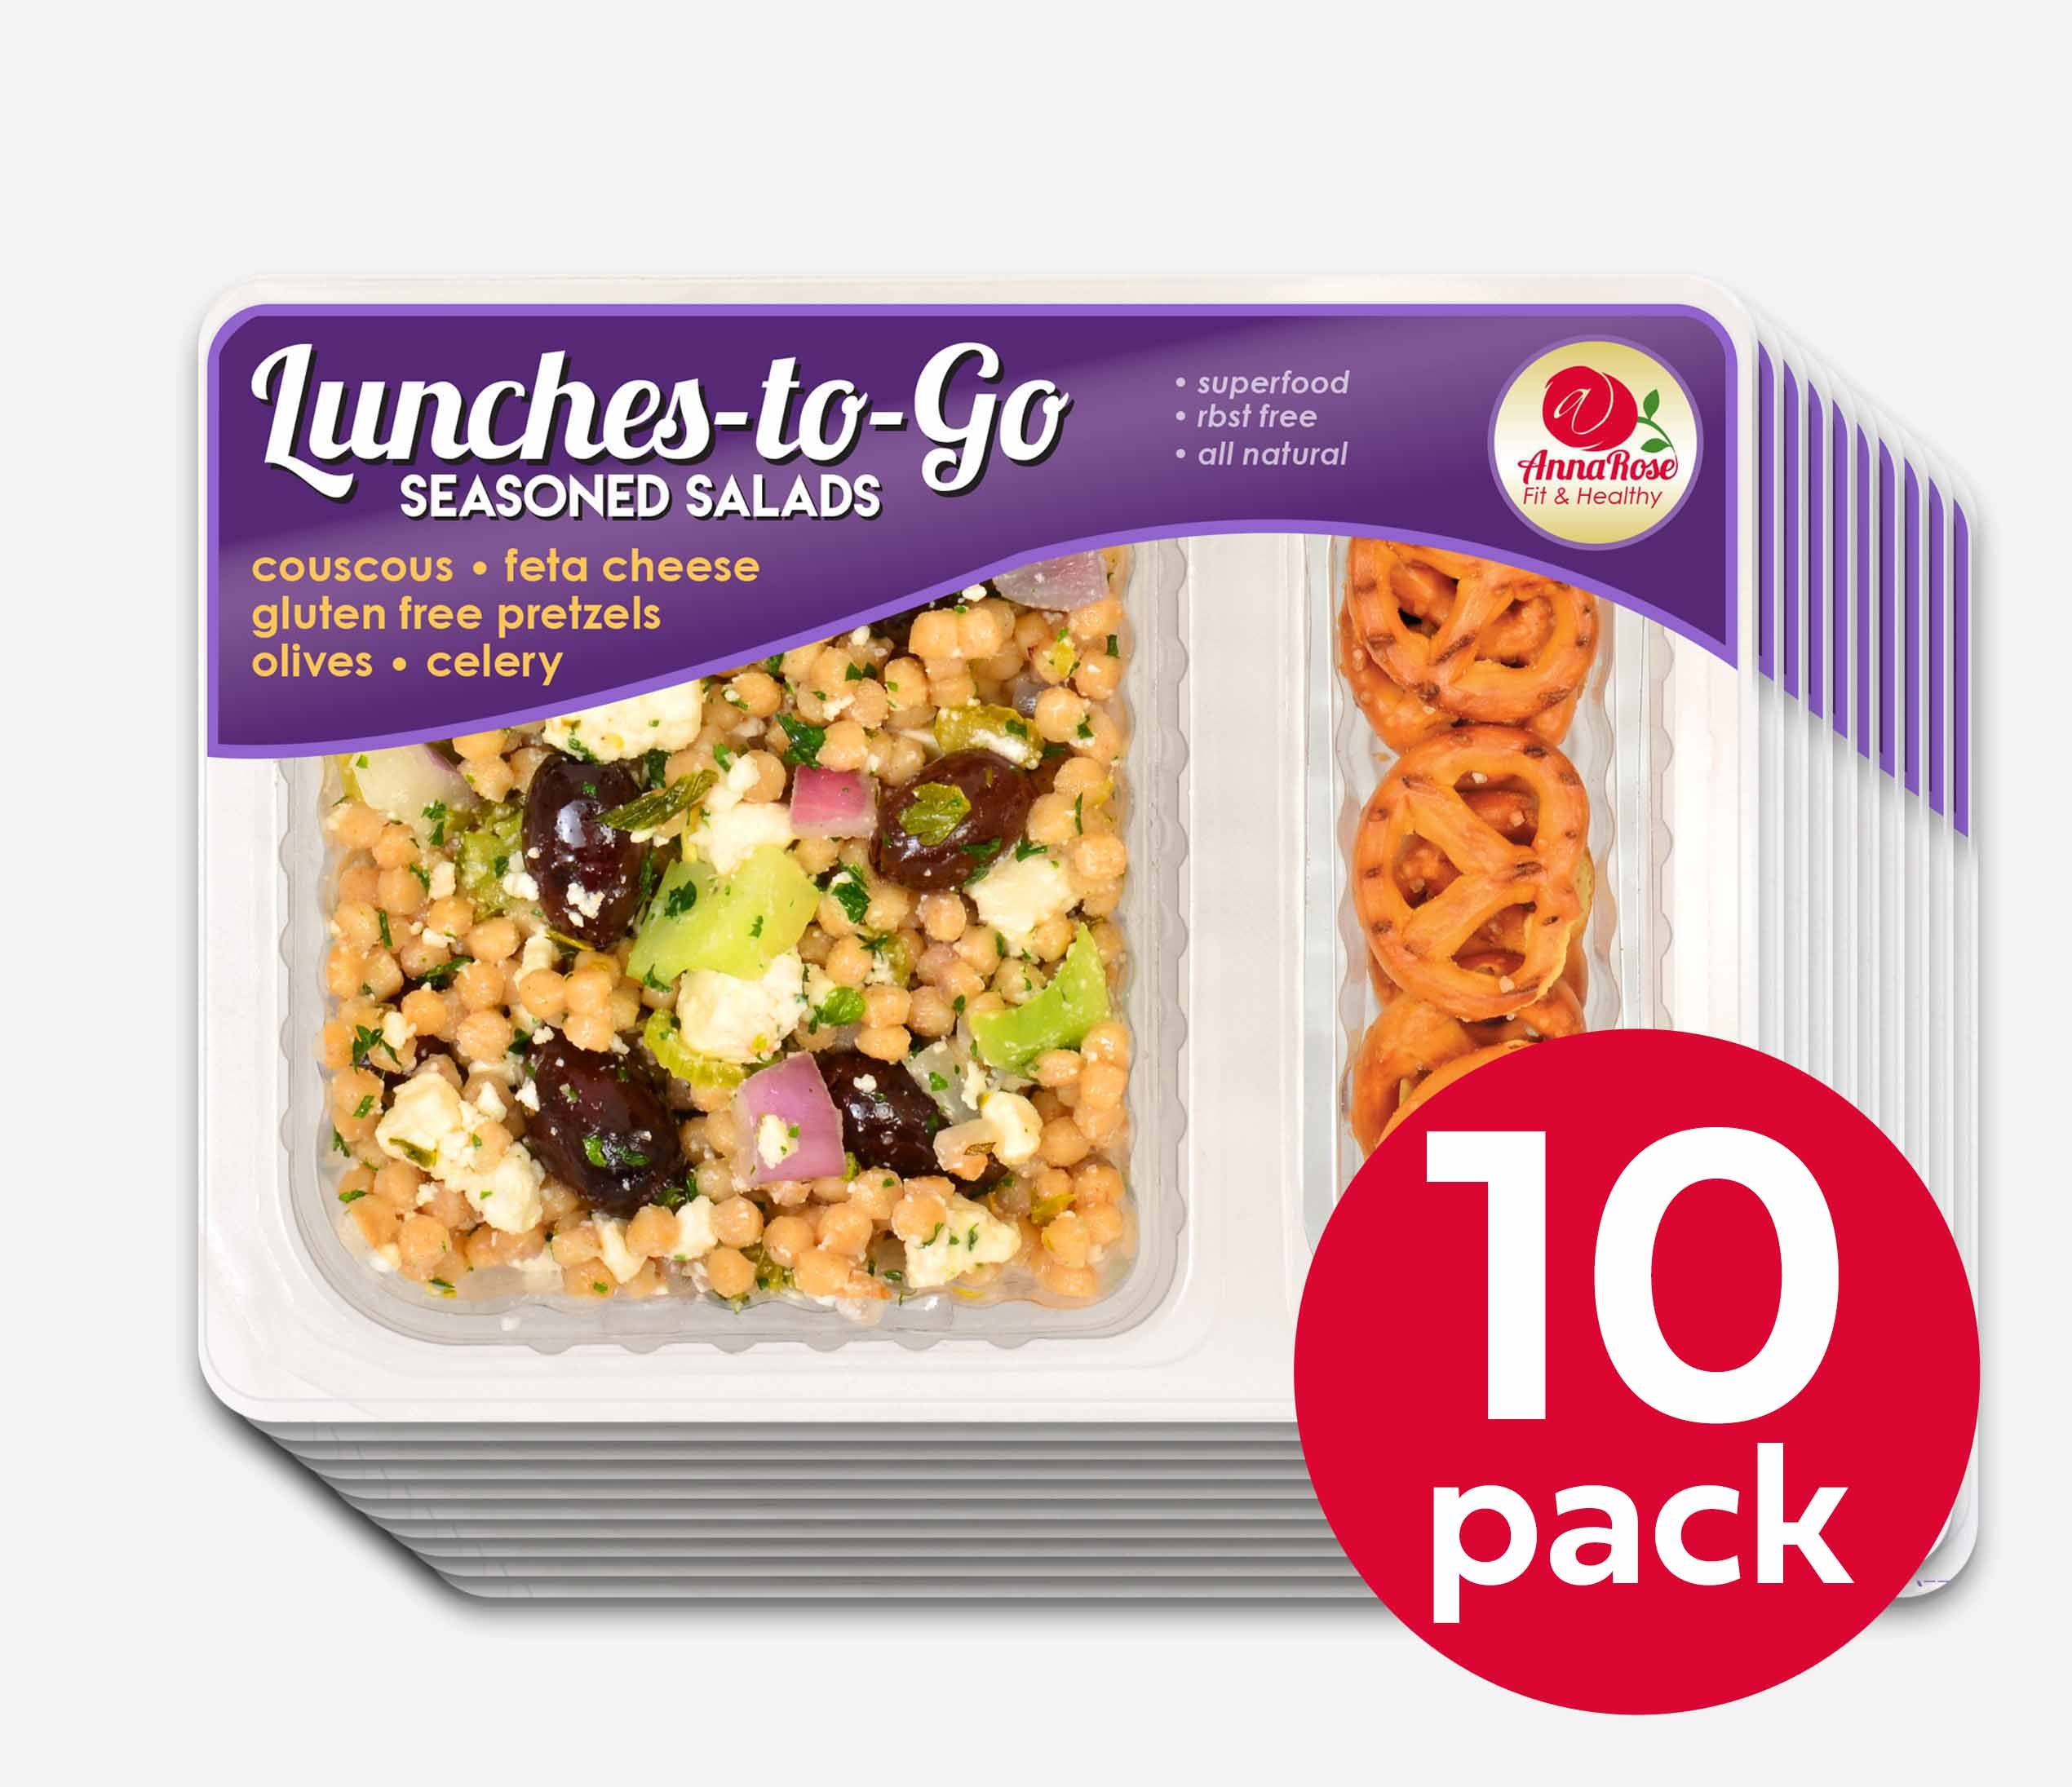 Lunches to Go 10 pack